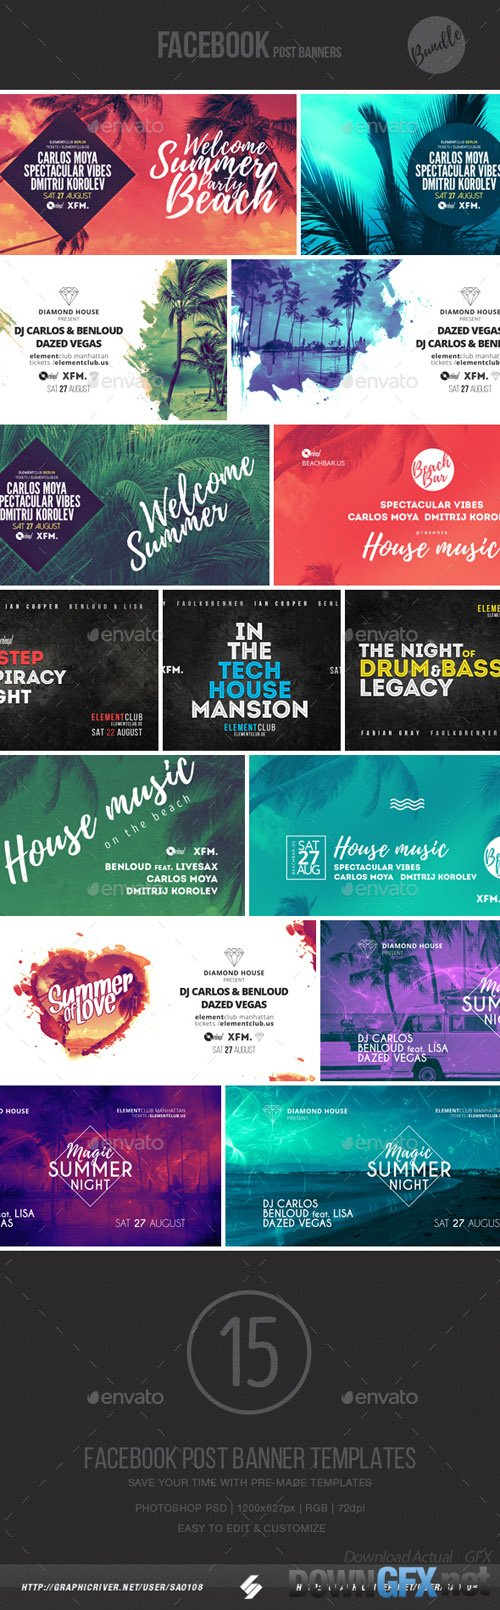 GR - Electronic Music Event Facebook Post Banner Templates Bundle 4 19904876